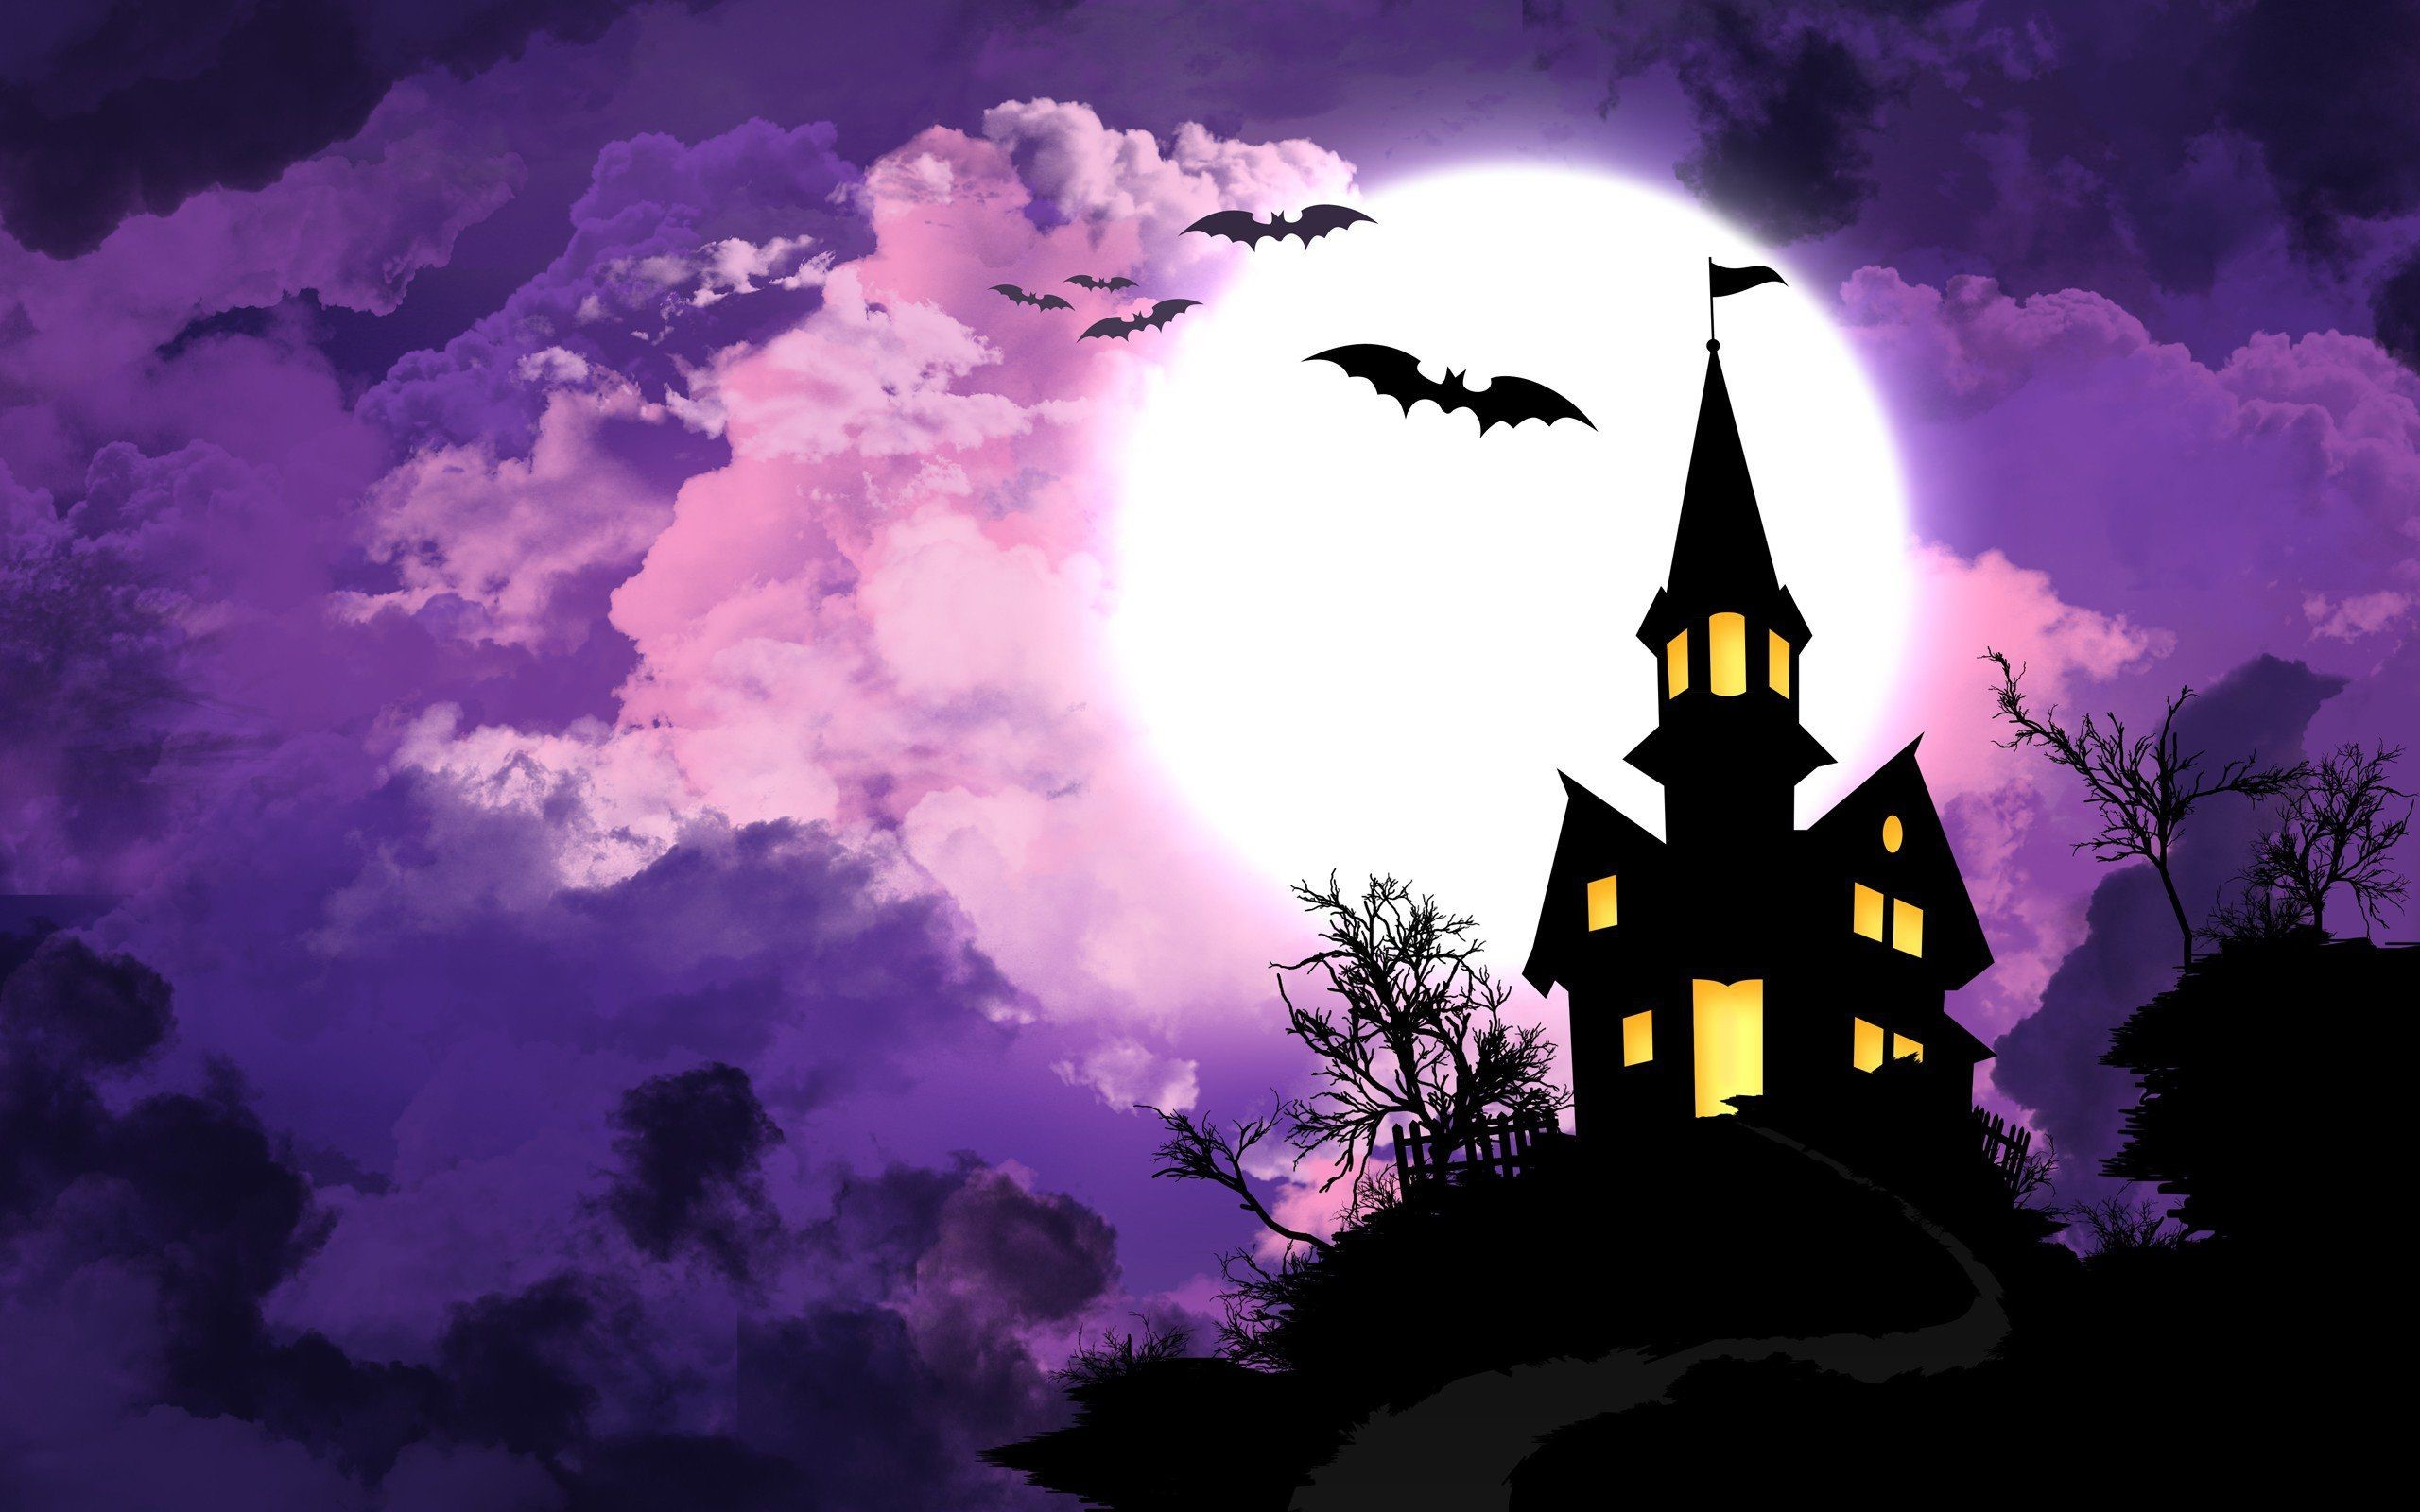 Halloween Scary House in The Moonlight HD Wallpaper